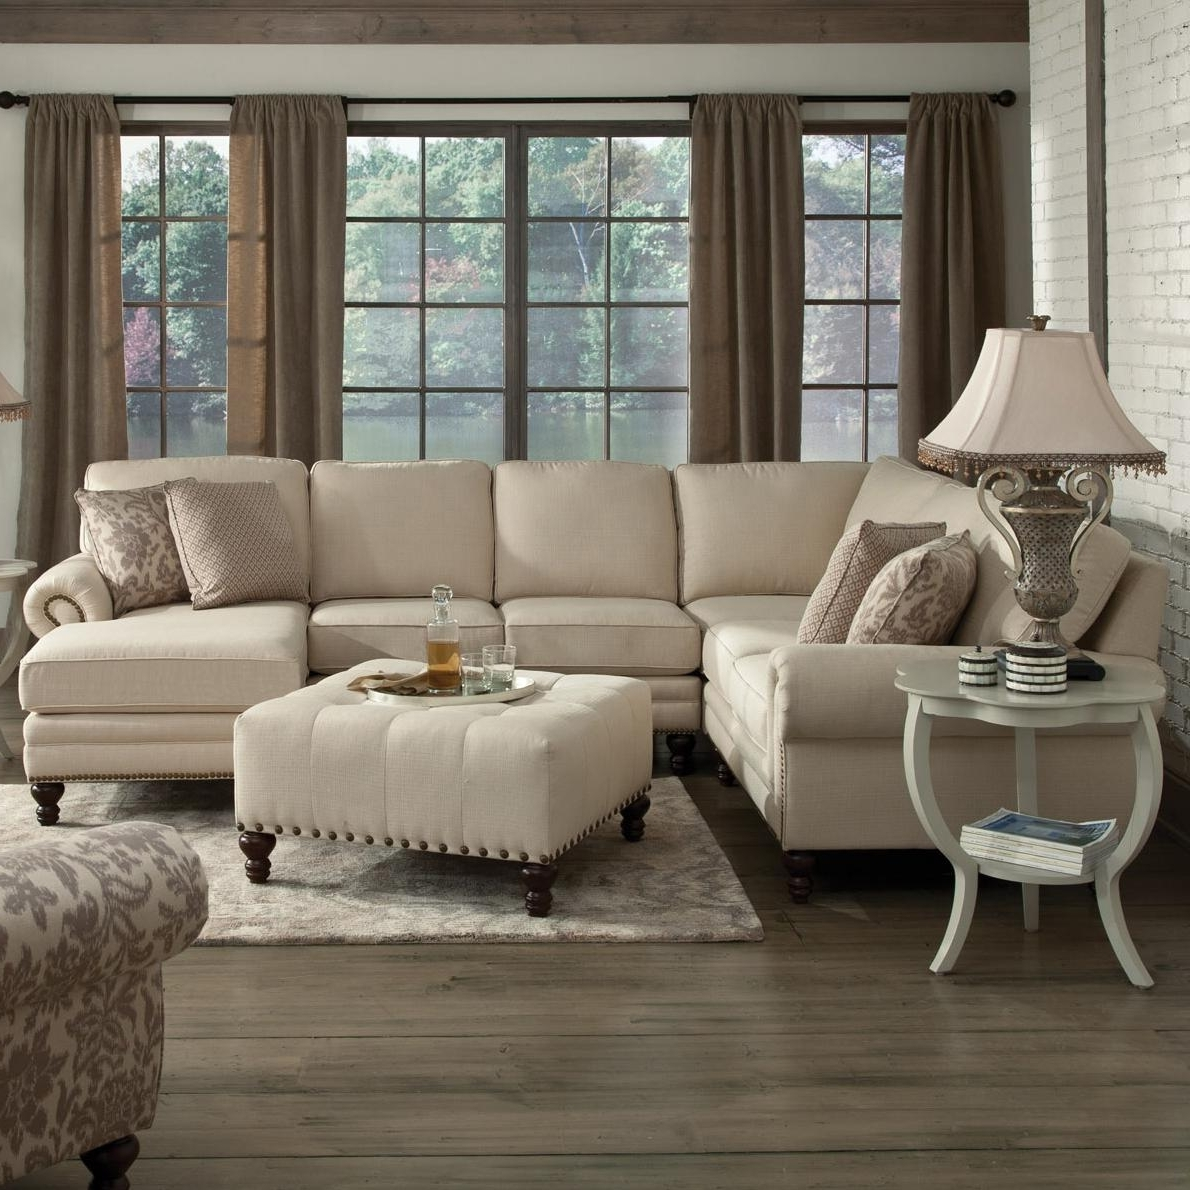 Best And Newest England Sectional Sofas Intended For England Amix Six Seat Sectional With Right Chaise – Ahfa – Sofa (View 6 of 15)